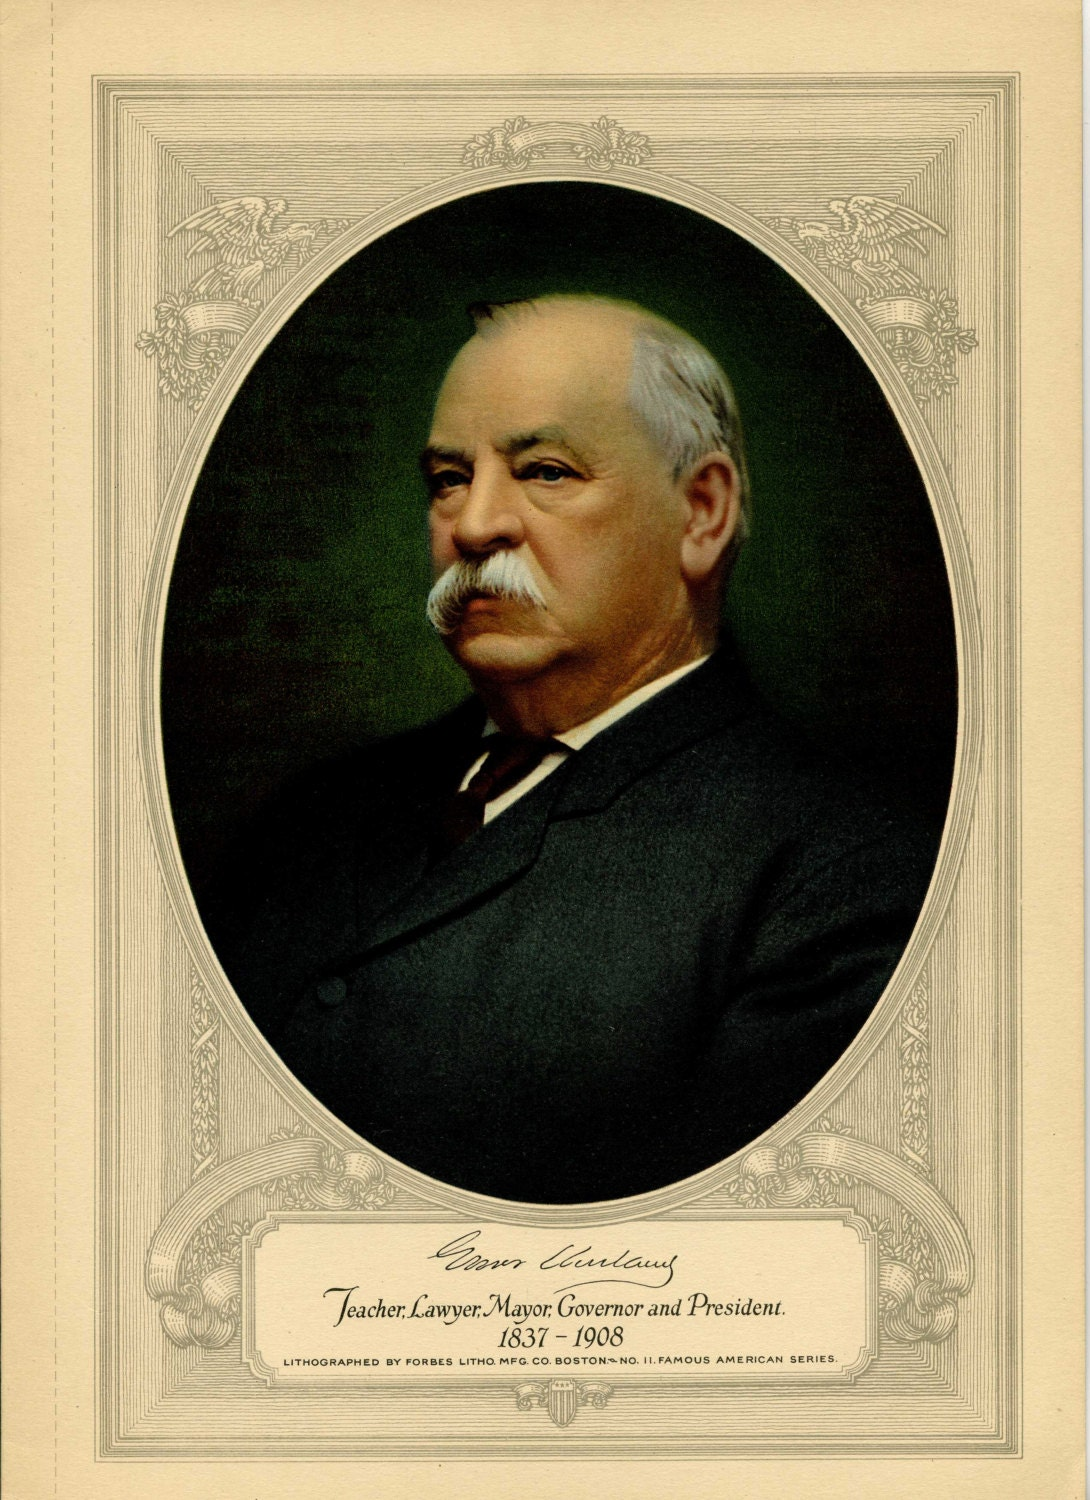 Glover Cleveland Lithograph: Famous American Series No. 11